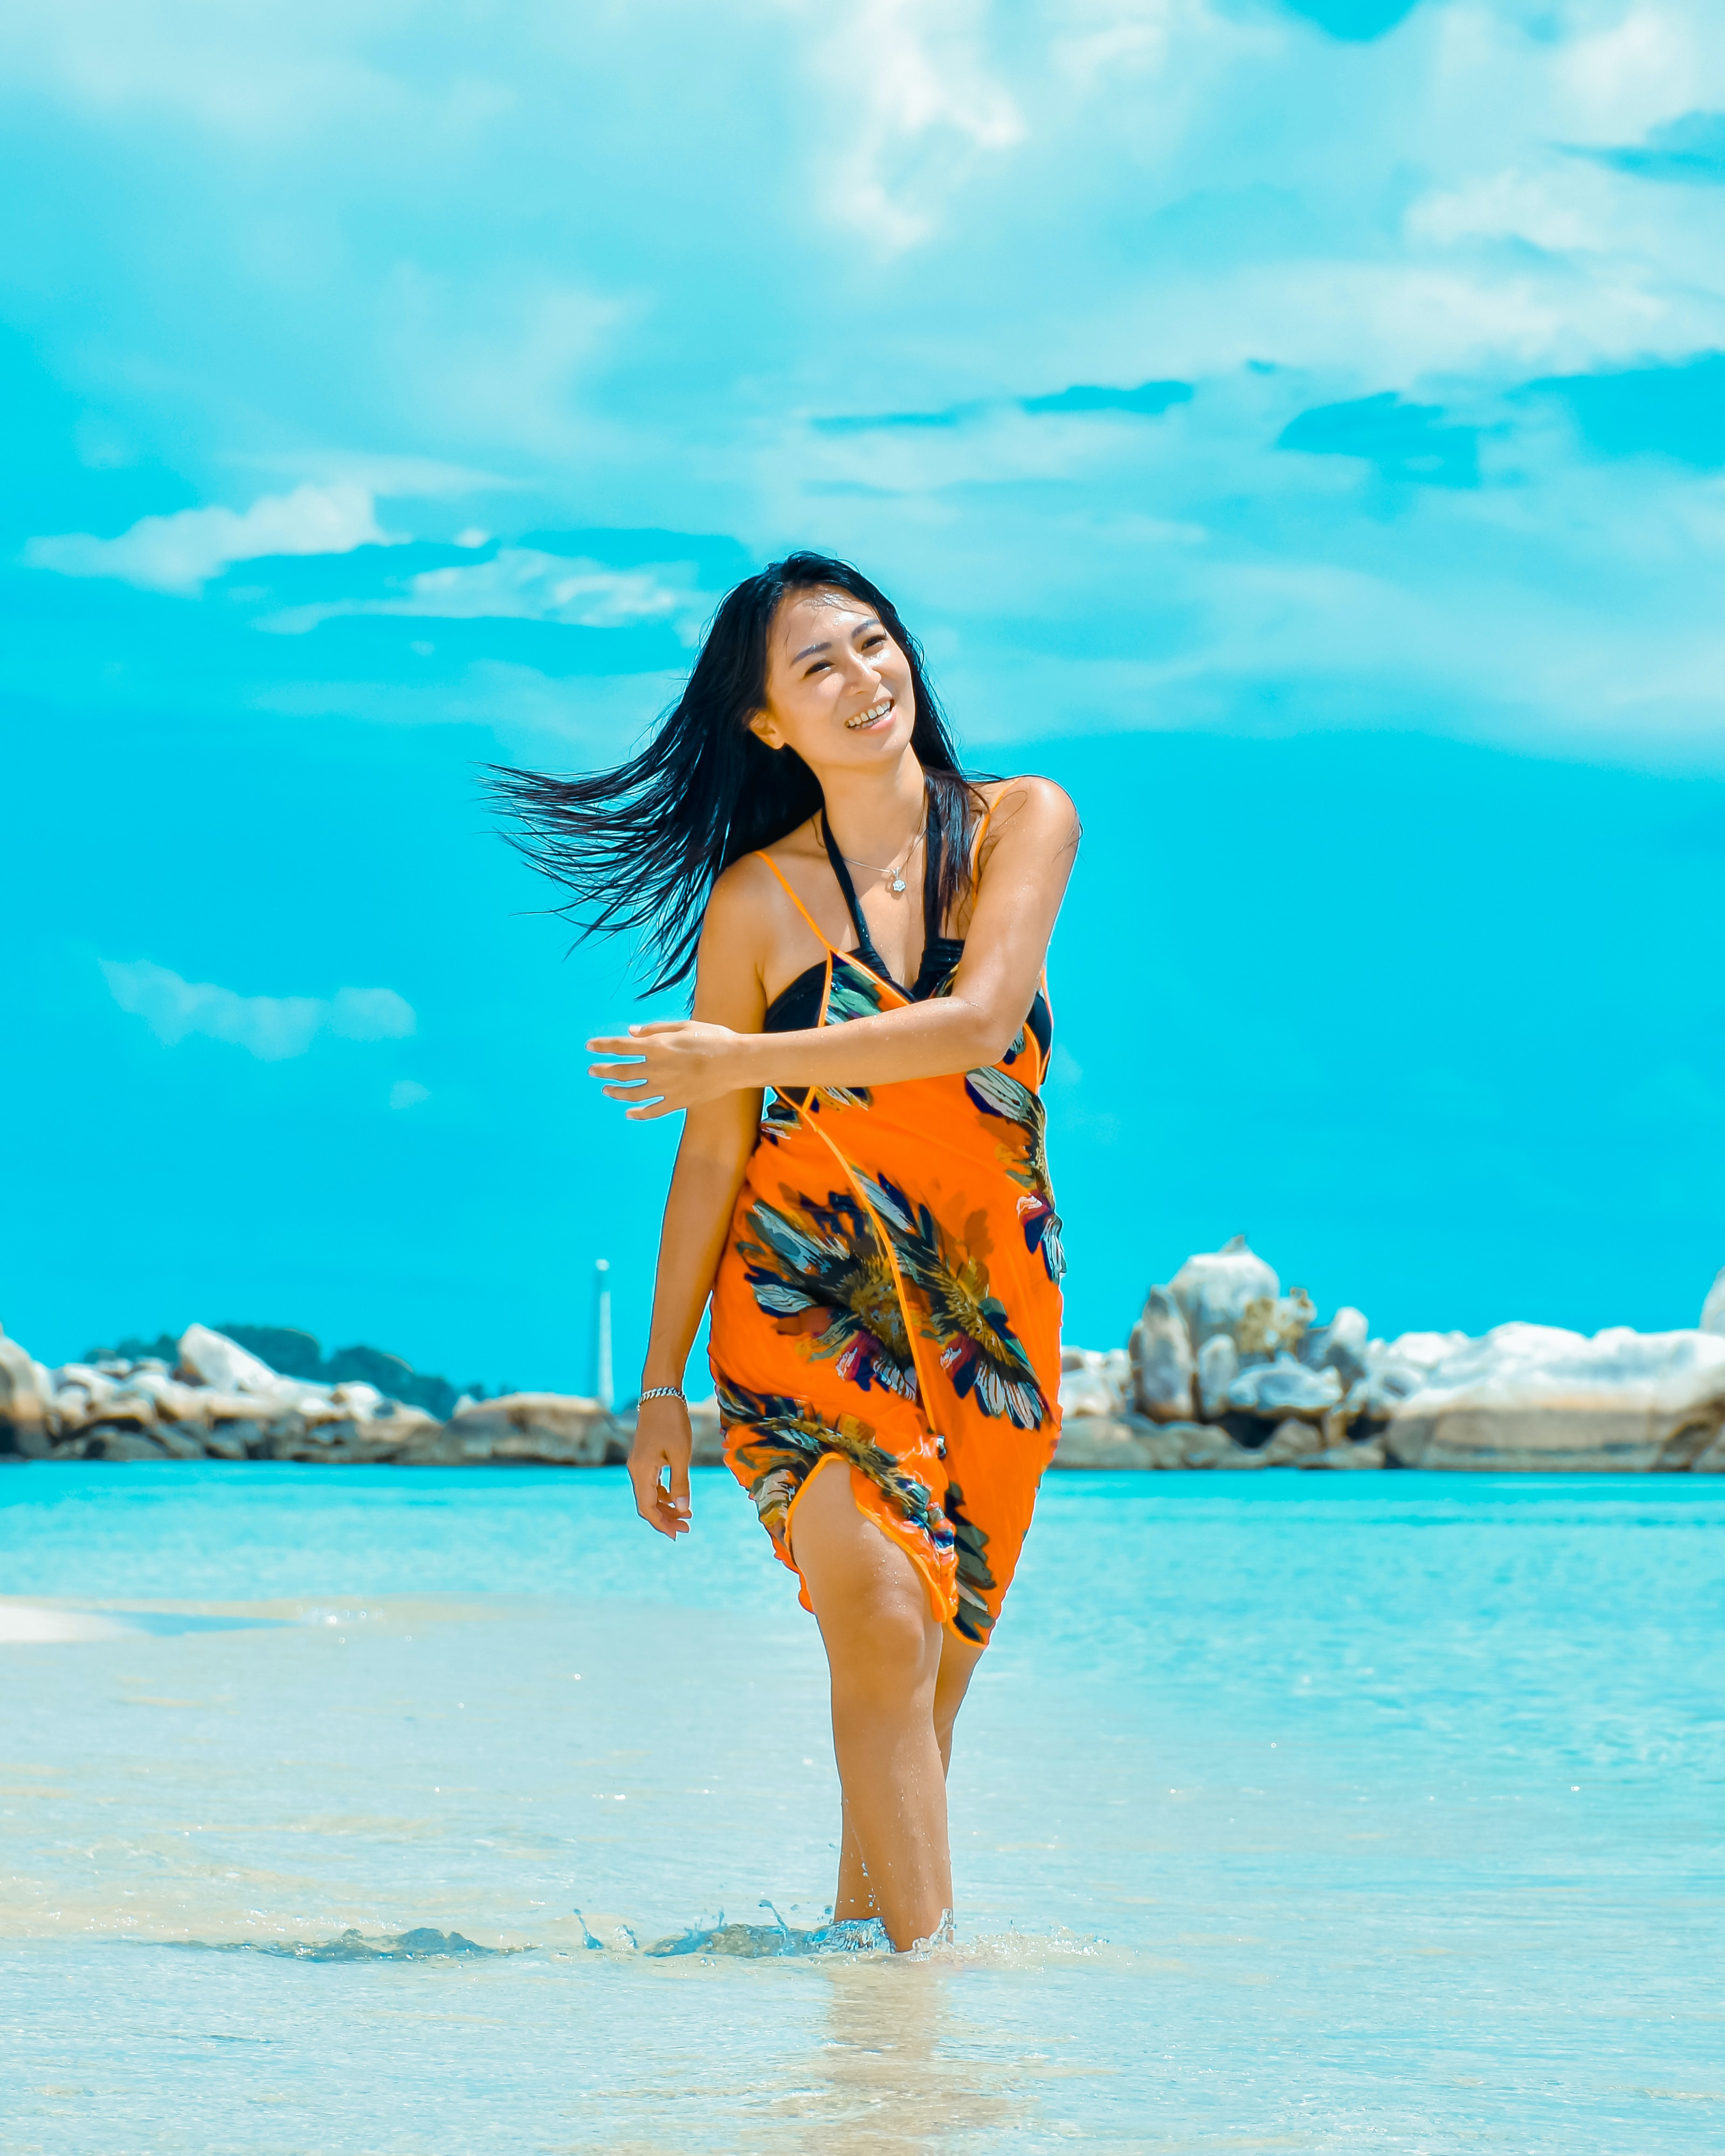 woman standing in seashore under white and blue sky during daytime